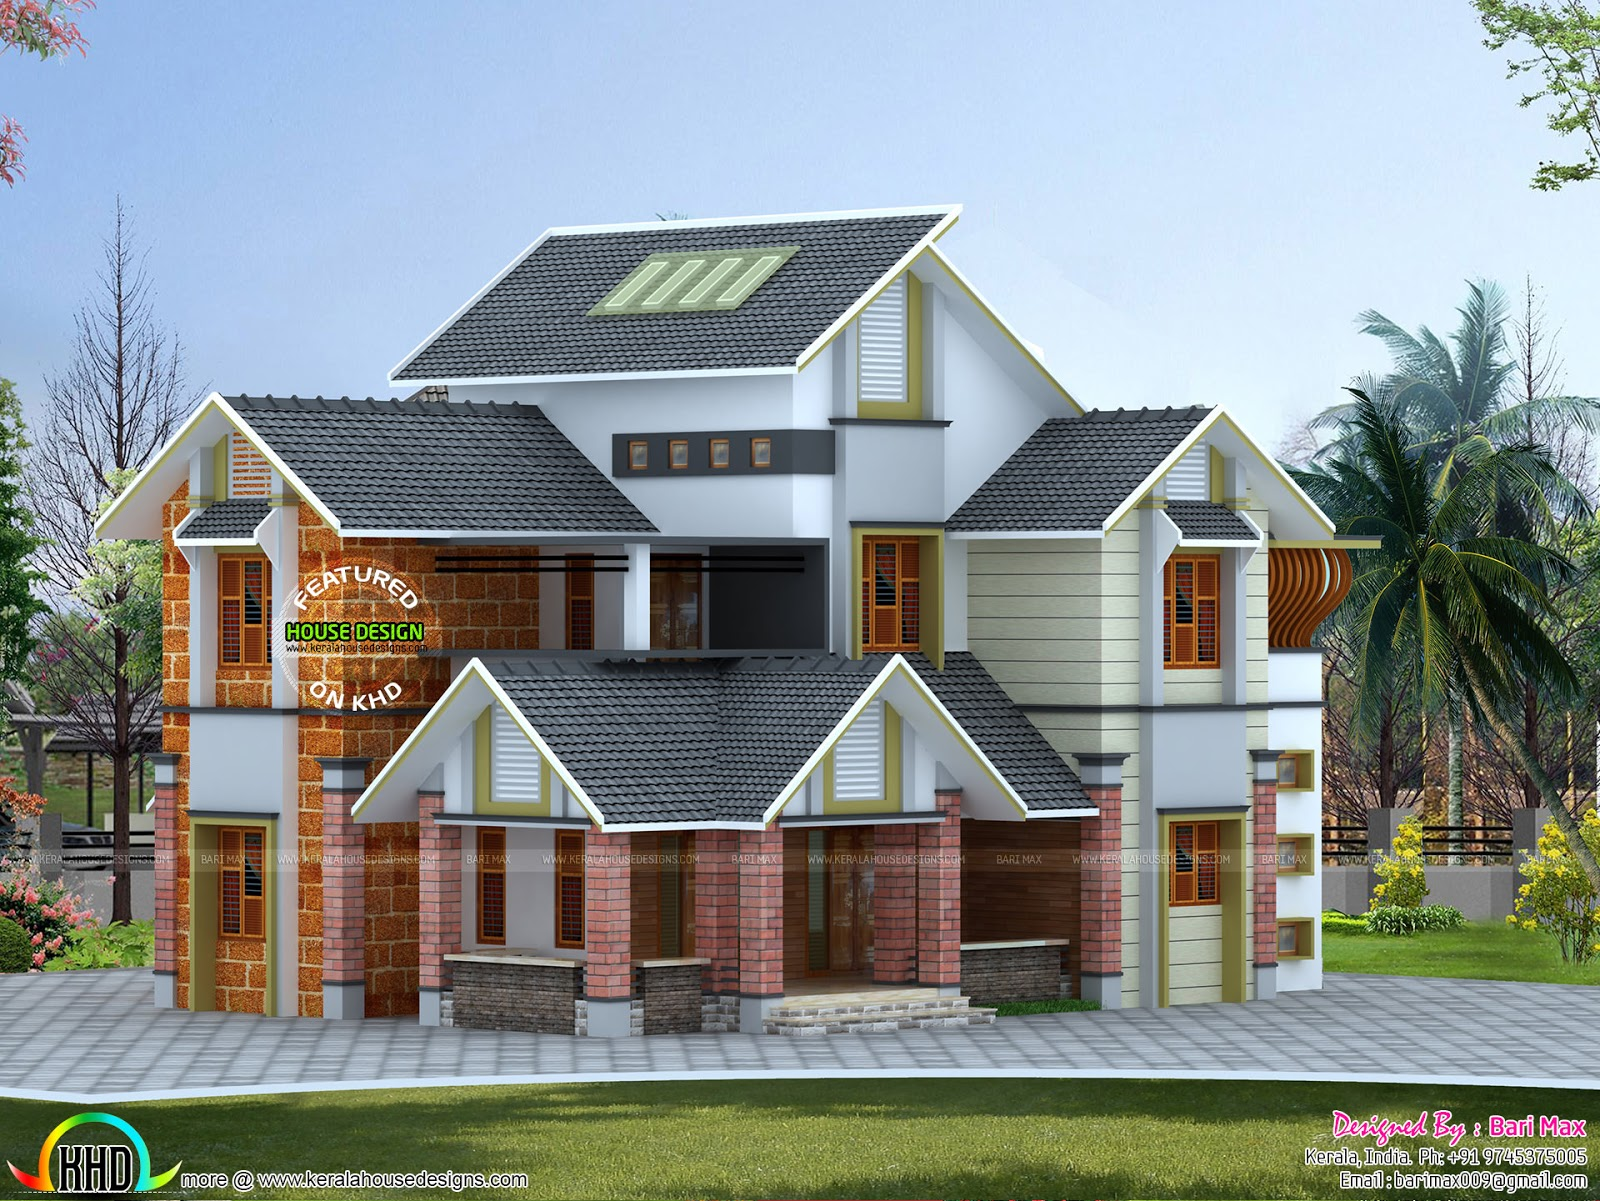 Double height dining hall slop roof house kerala home for Kerala home designs photos in double floor